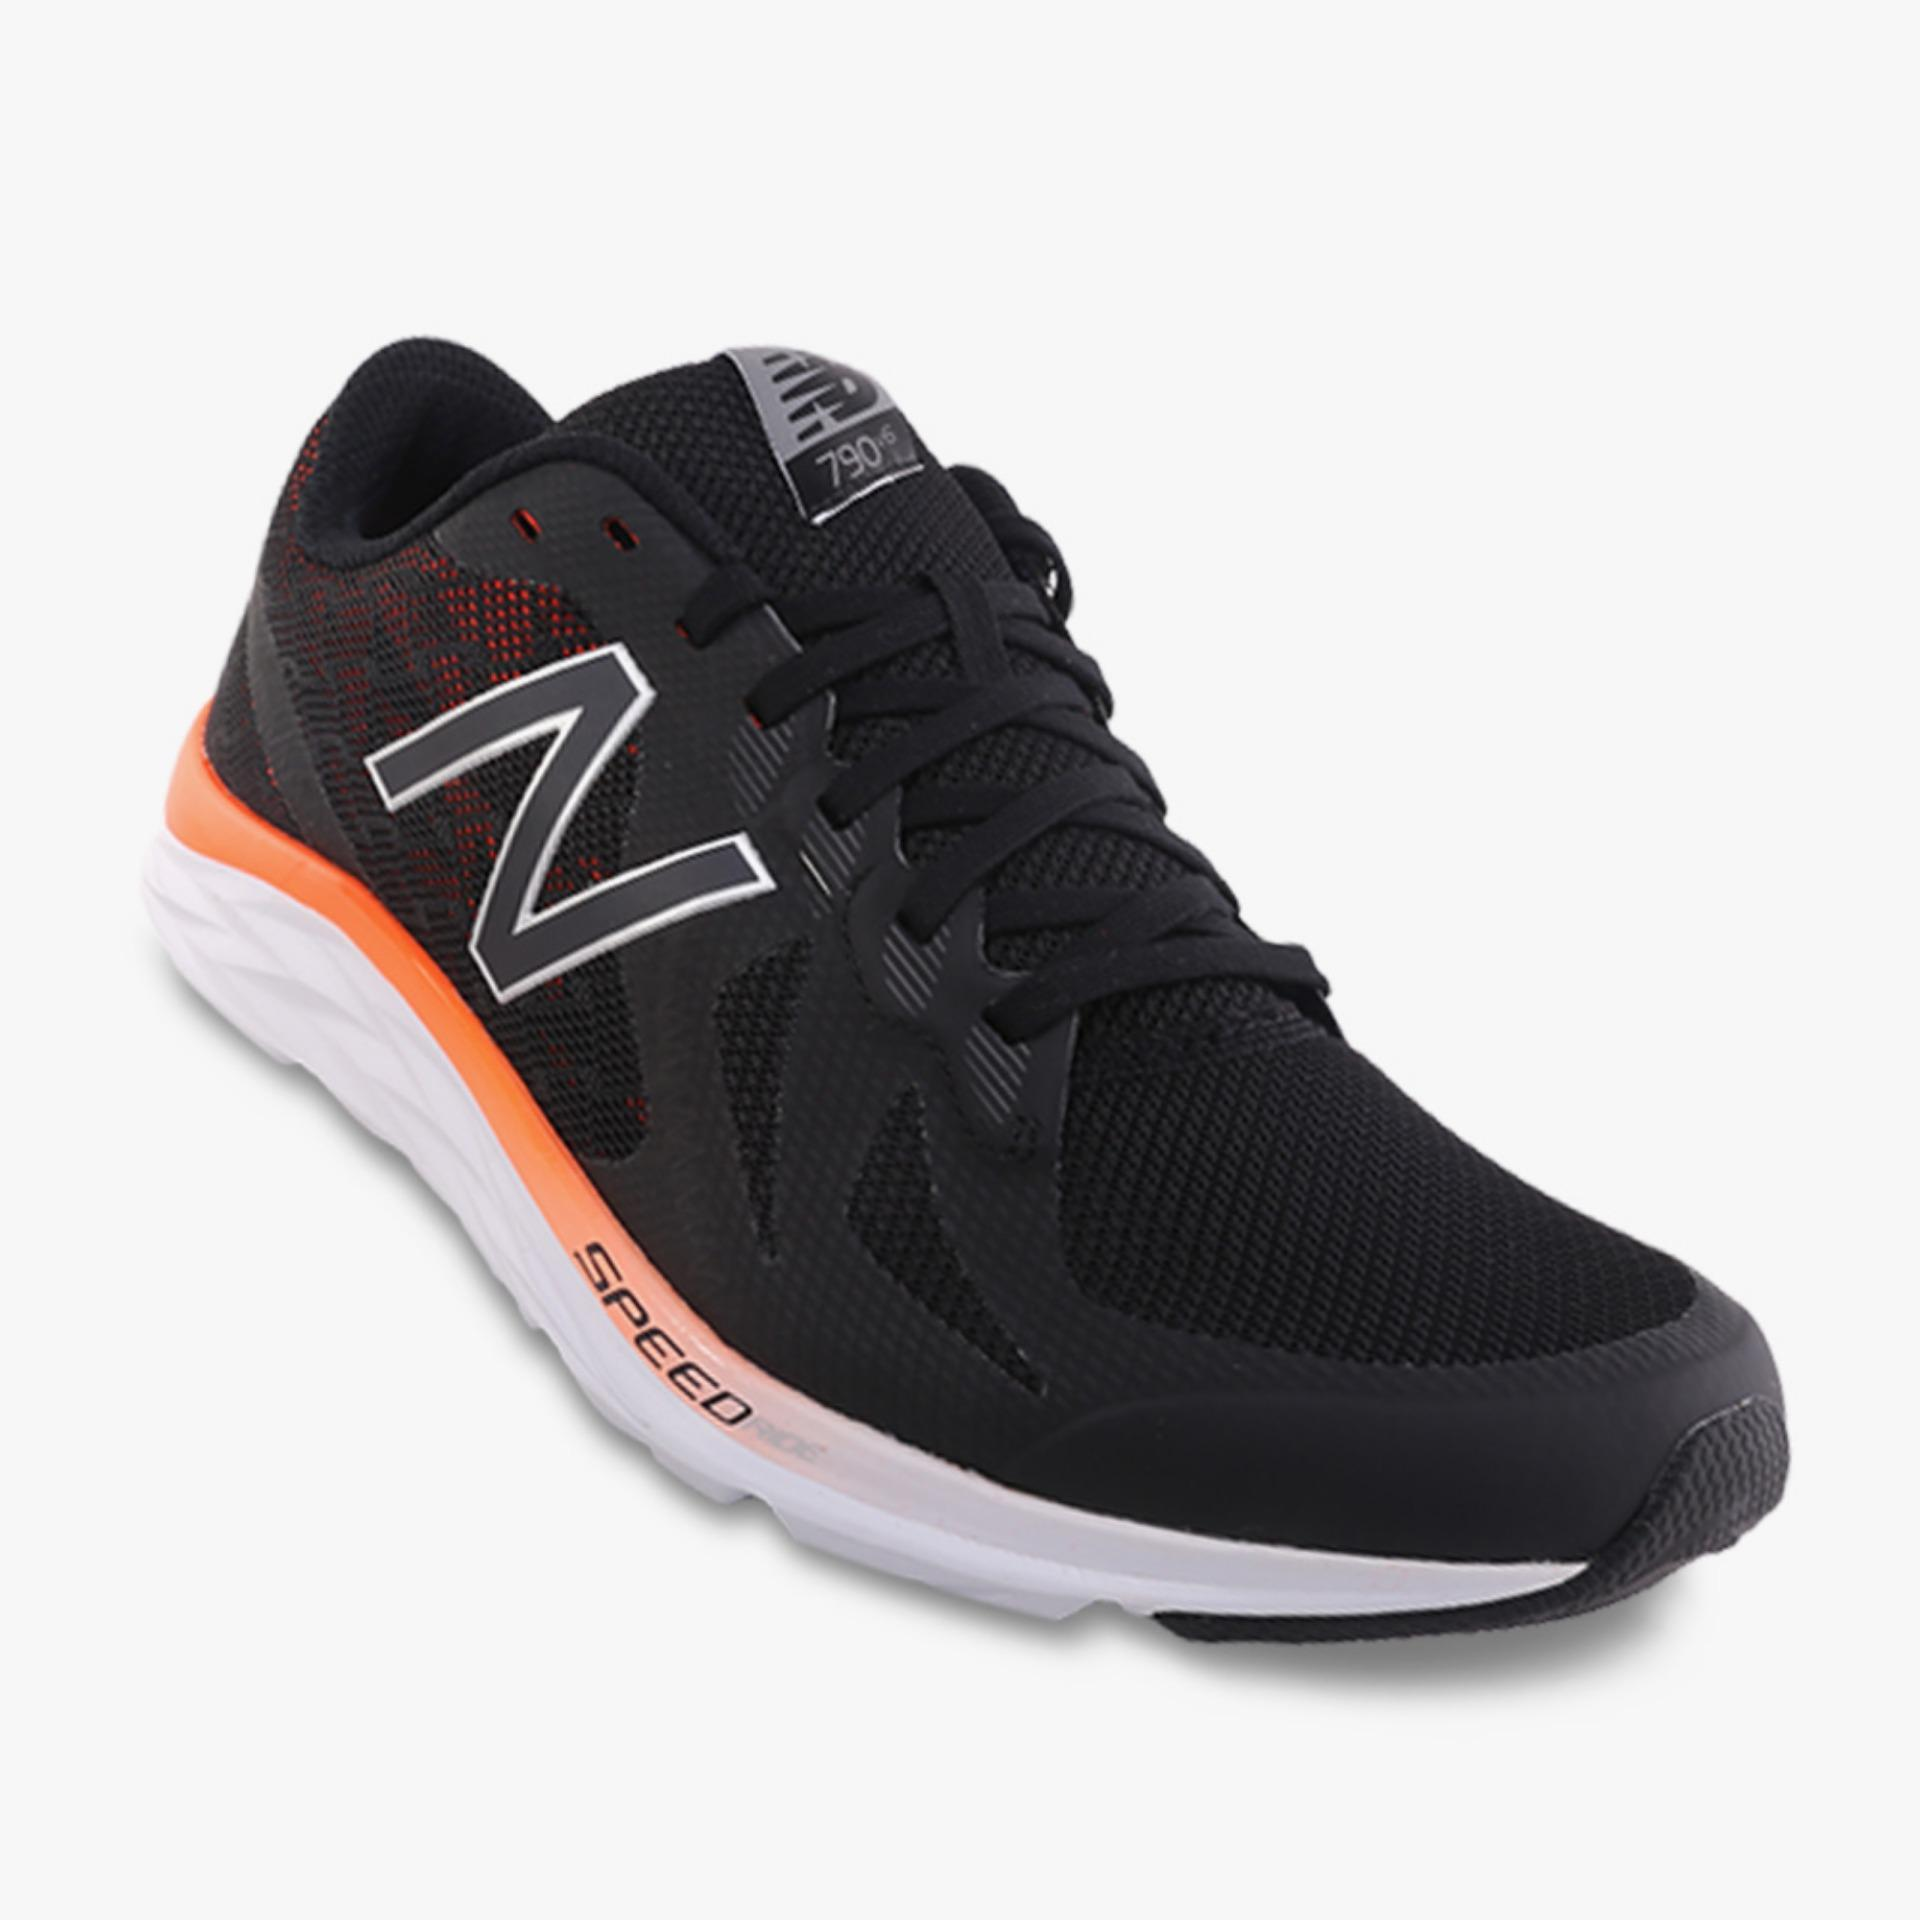 Toko New Balance Speed Ride 790 Men S Running Shoes Hitam New Balance